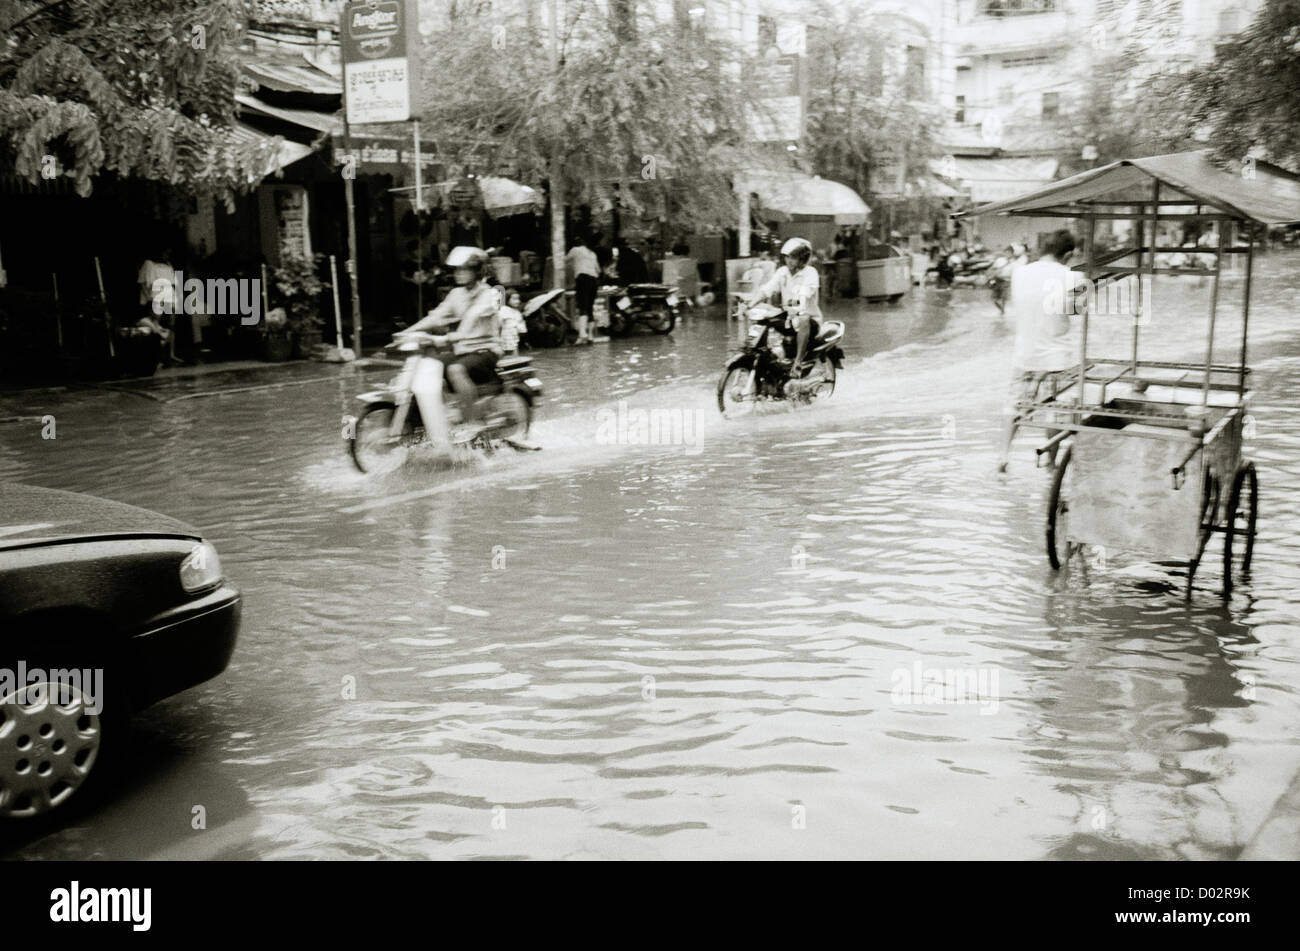 Monsoon rain storm weather climate in Phnom Penh Cambodia in Far East Southeast Asia. Stormy Rainstorm Reportage - Stock Image